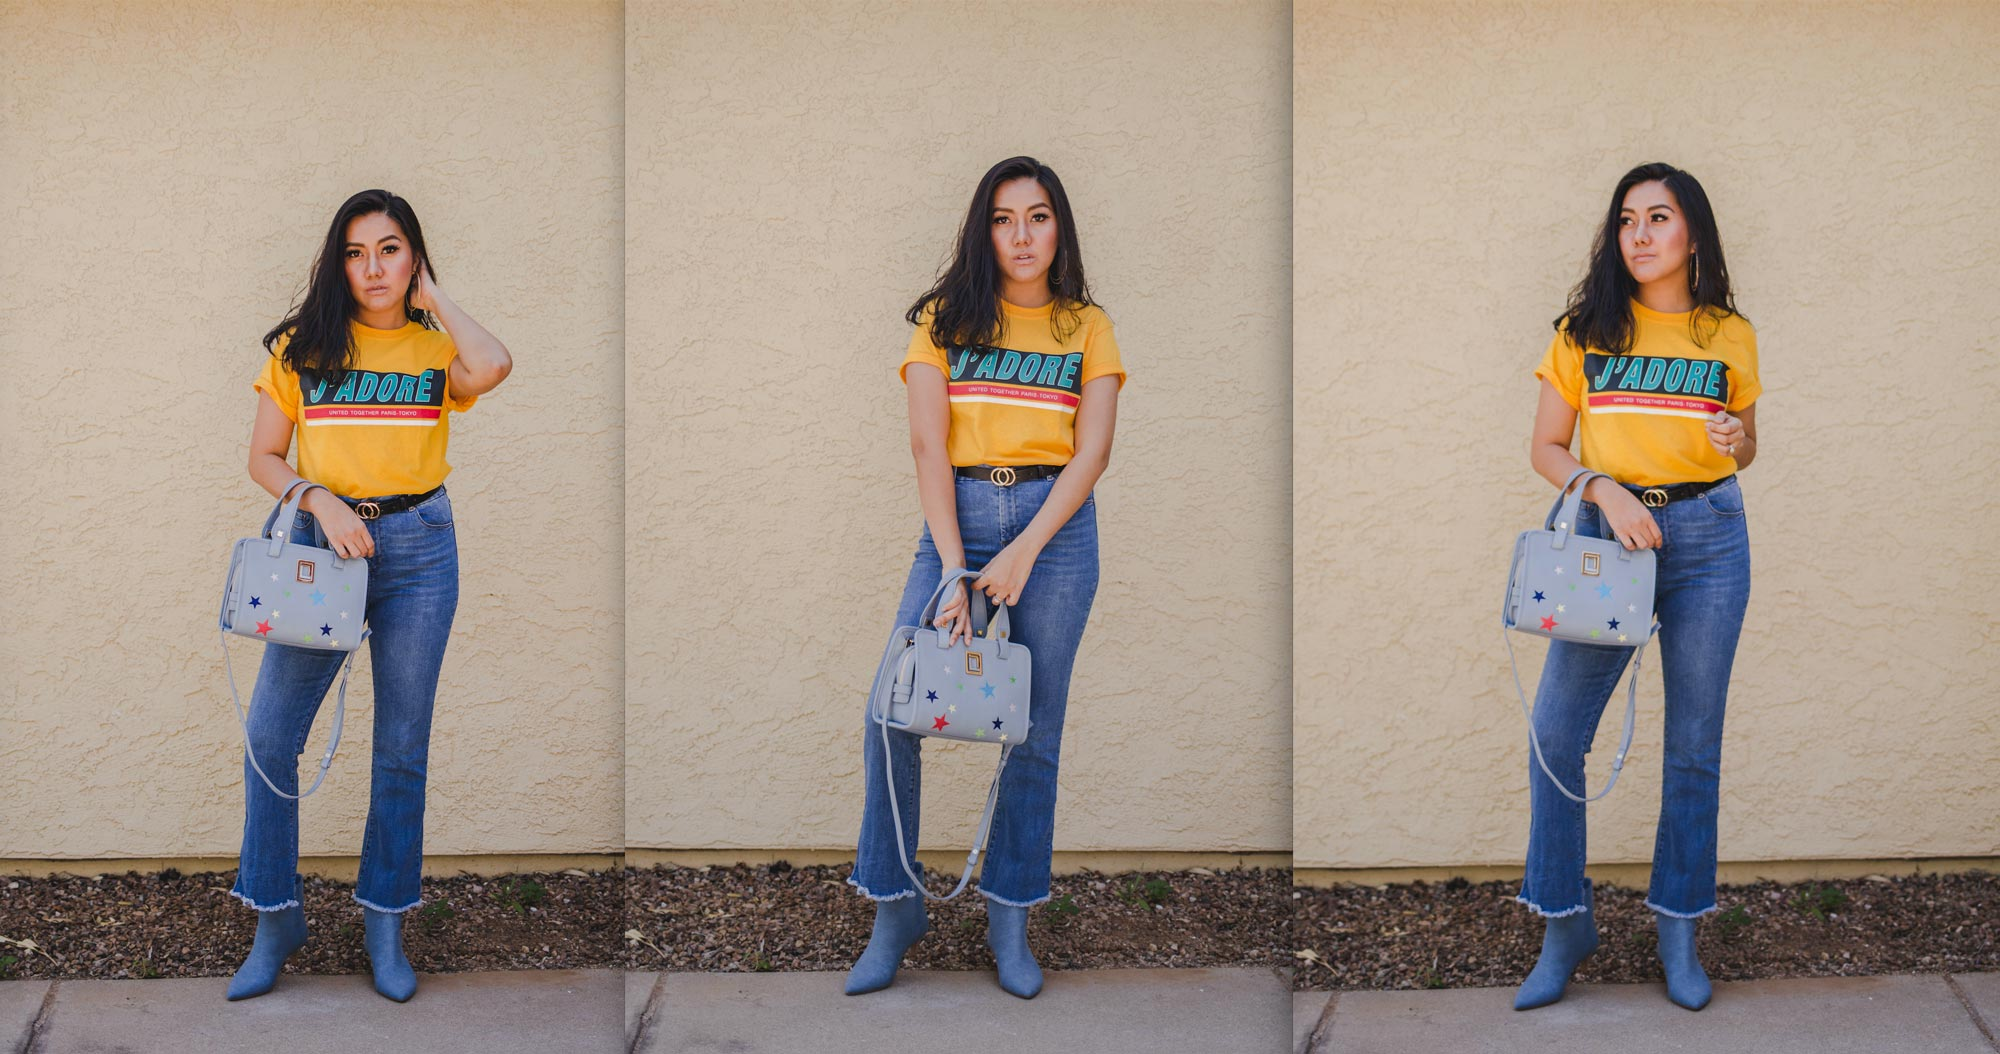 Fashion blogger Molly Larsen Wearing yellow J'ADORE Tee with blue denim jeans